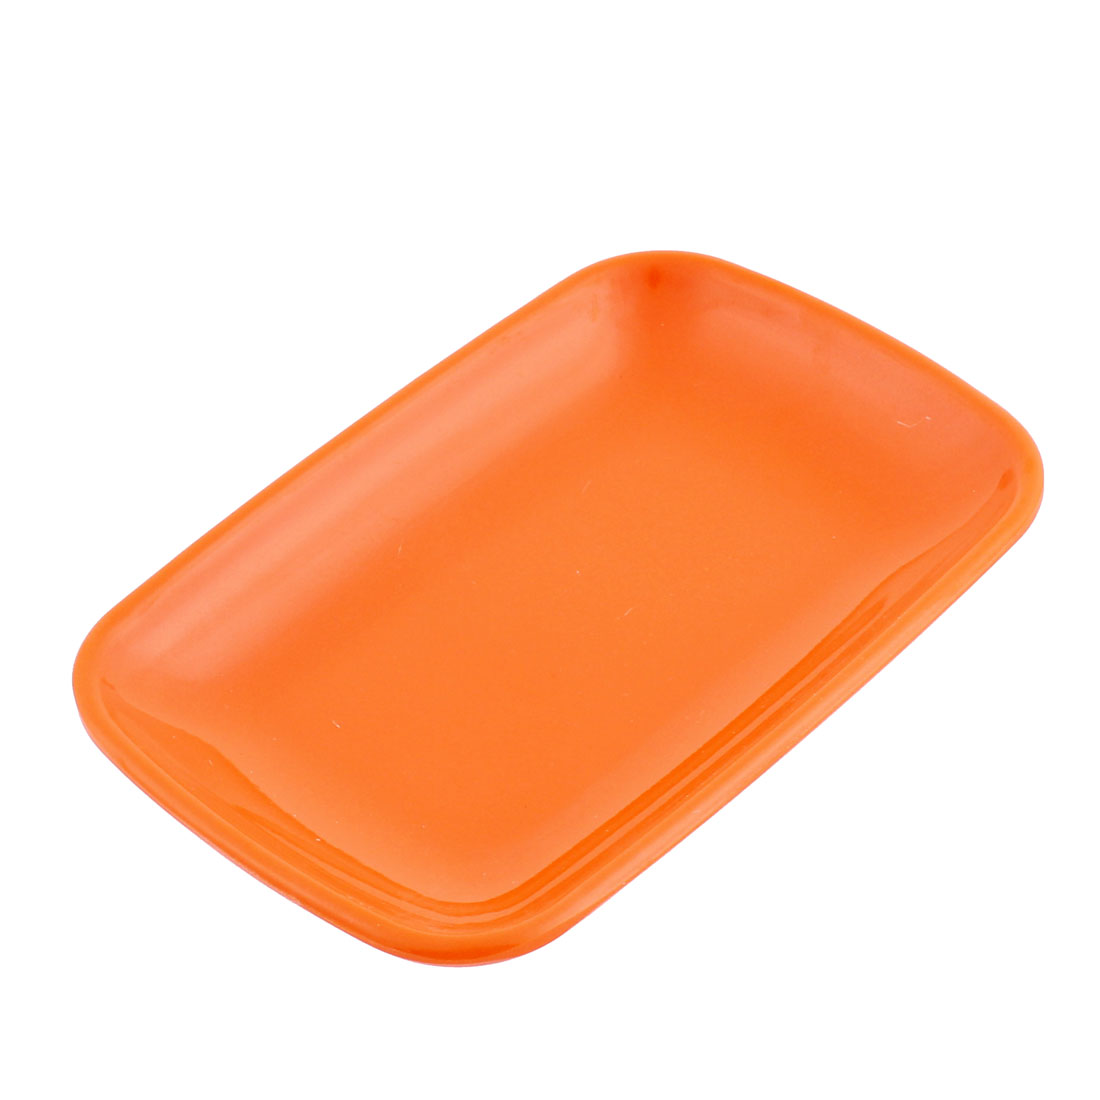 Restaurant Plastic Rectangle Shaped Dessert Pickles Appetizer Plate Dish Orangered